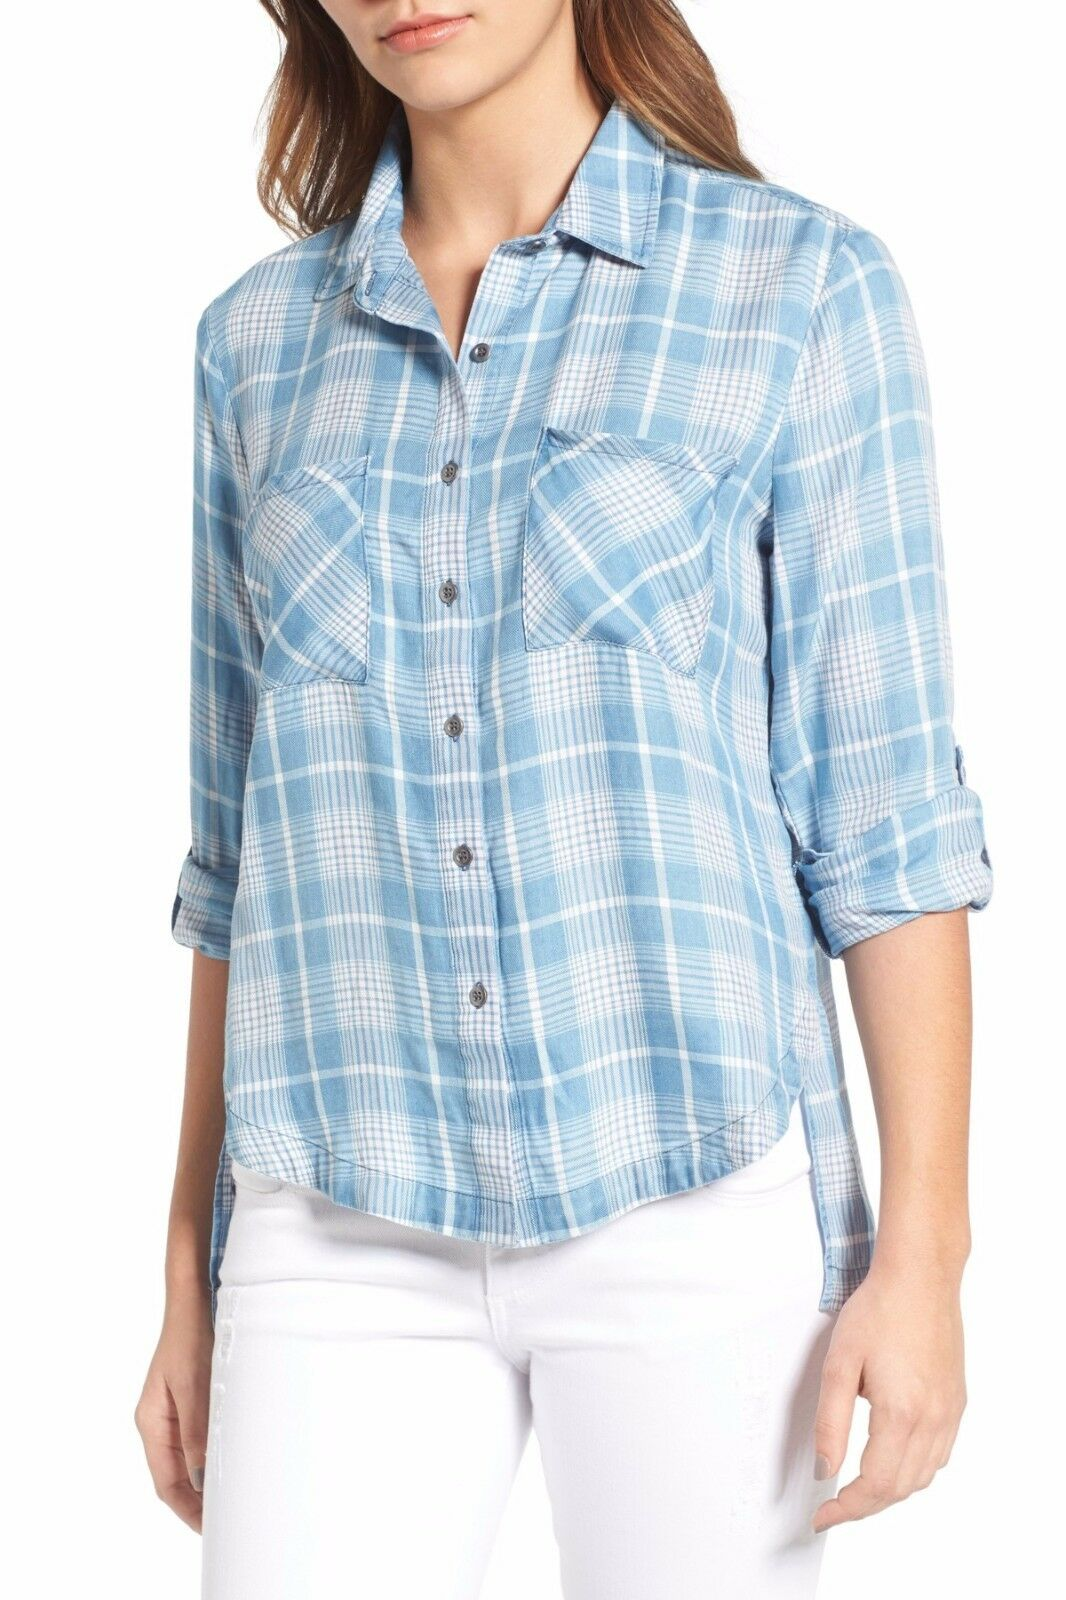 BILLY T Blouse Hi-Lo Girlfriend Plaid - Sz L